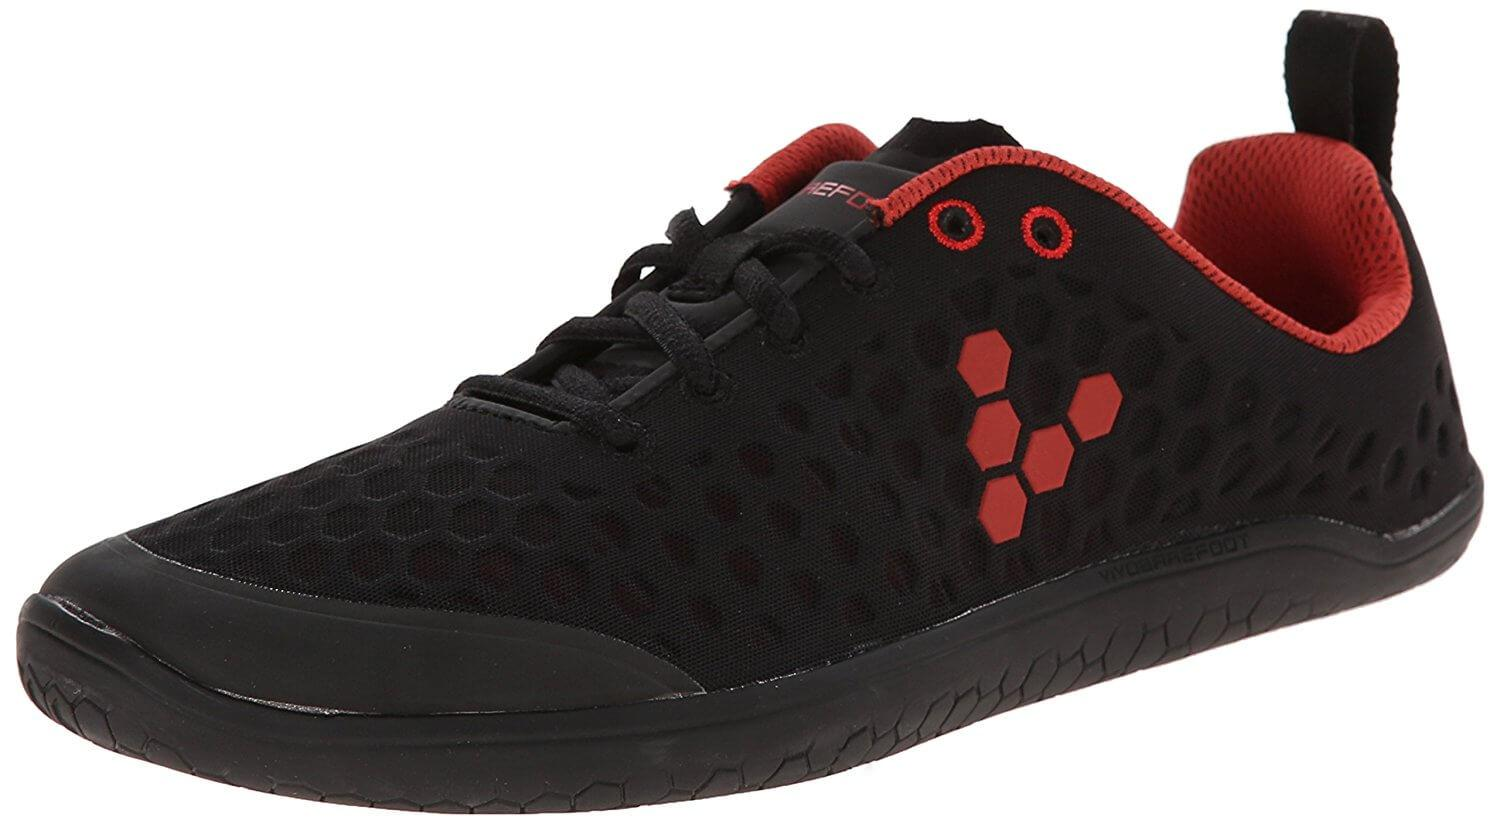 Vivobarefoot Stealth II toe to heel